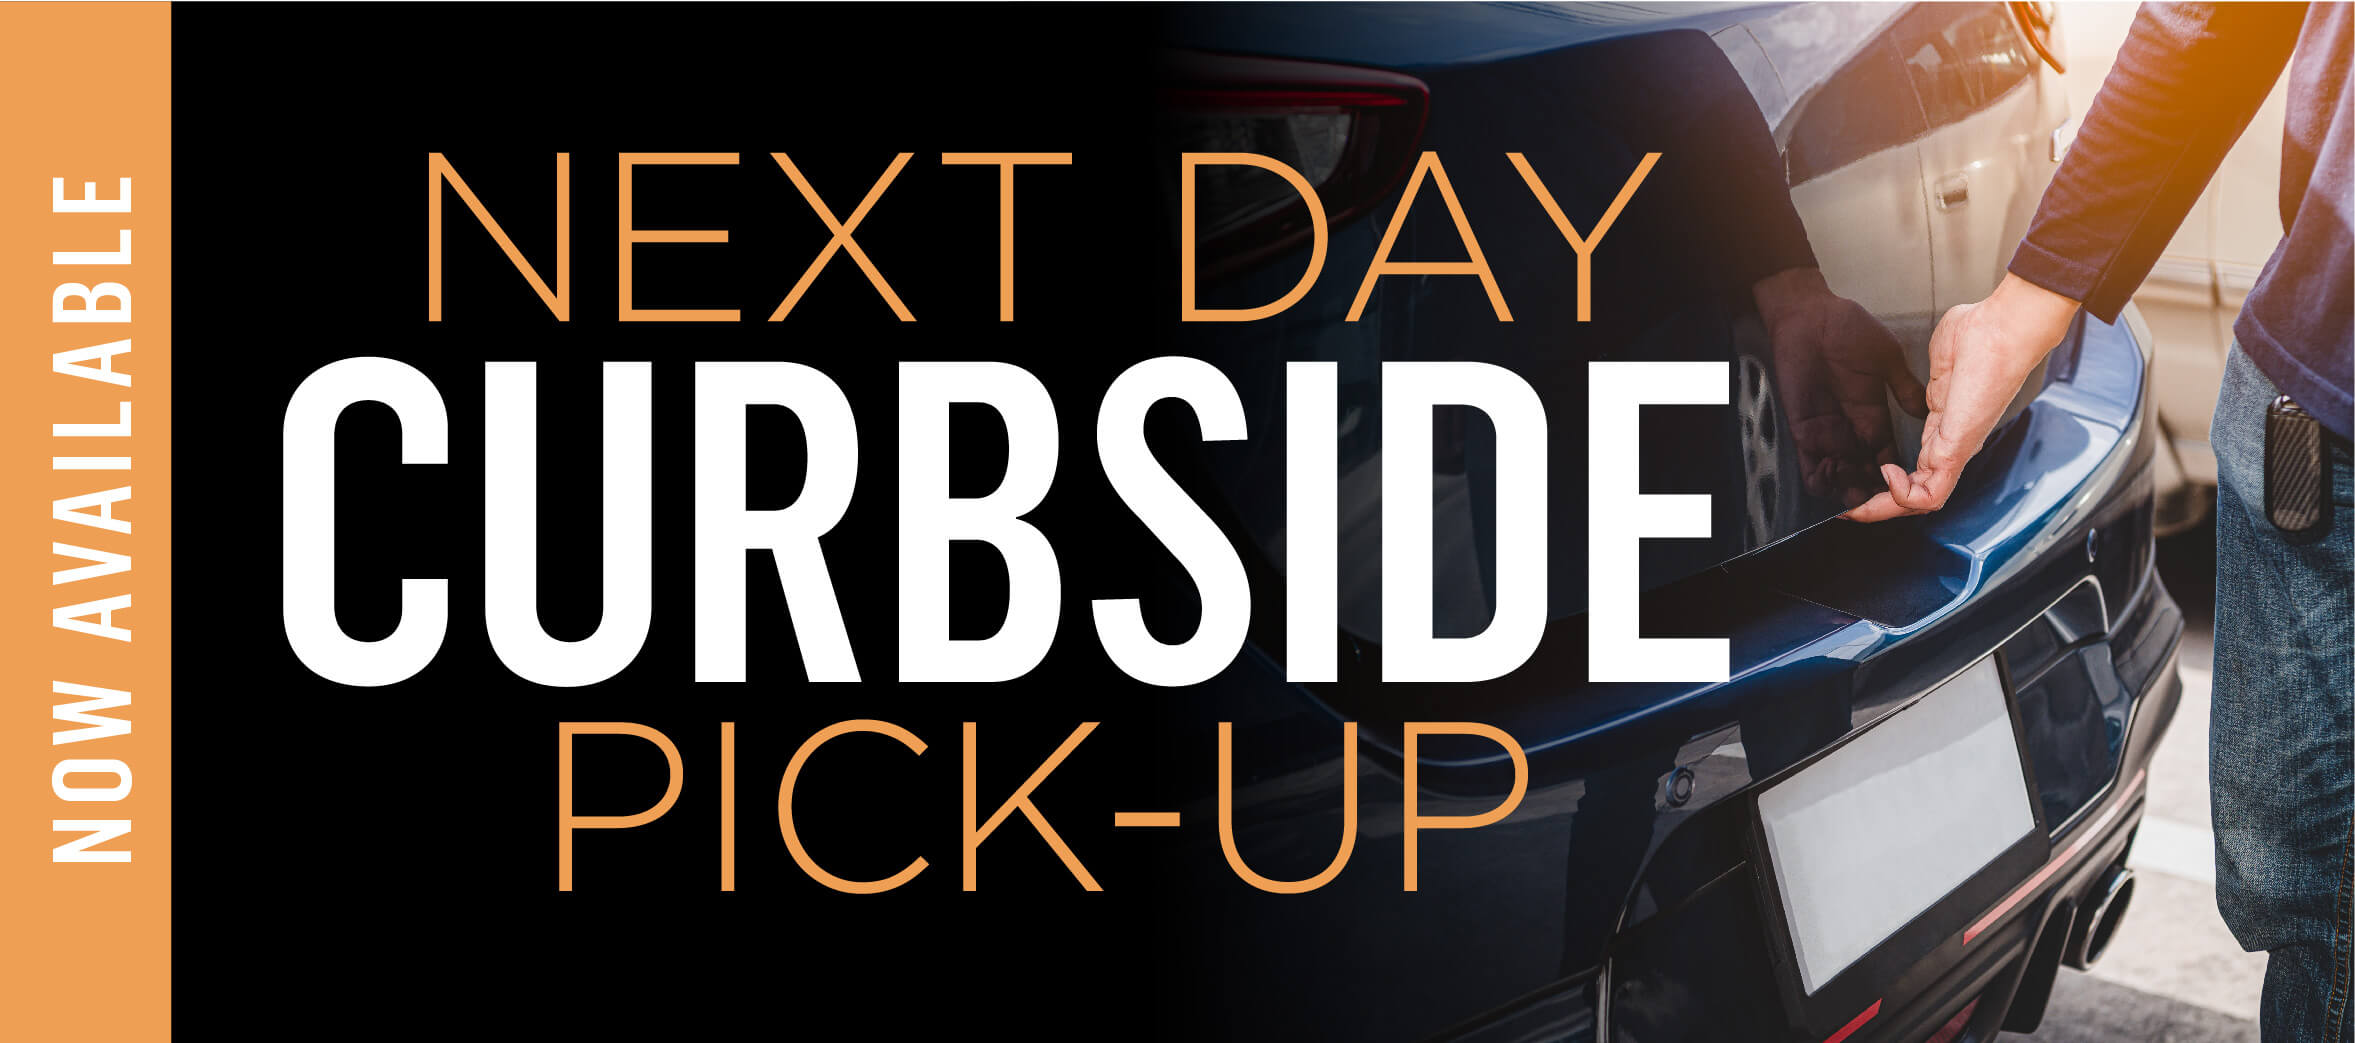 Next Day Curbside PICKUP HEADER EN